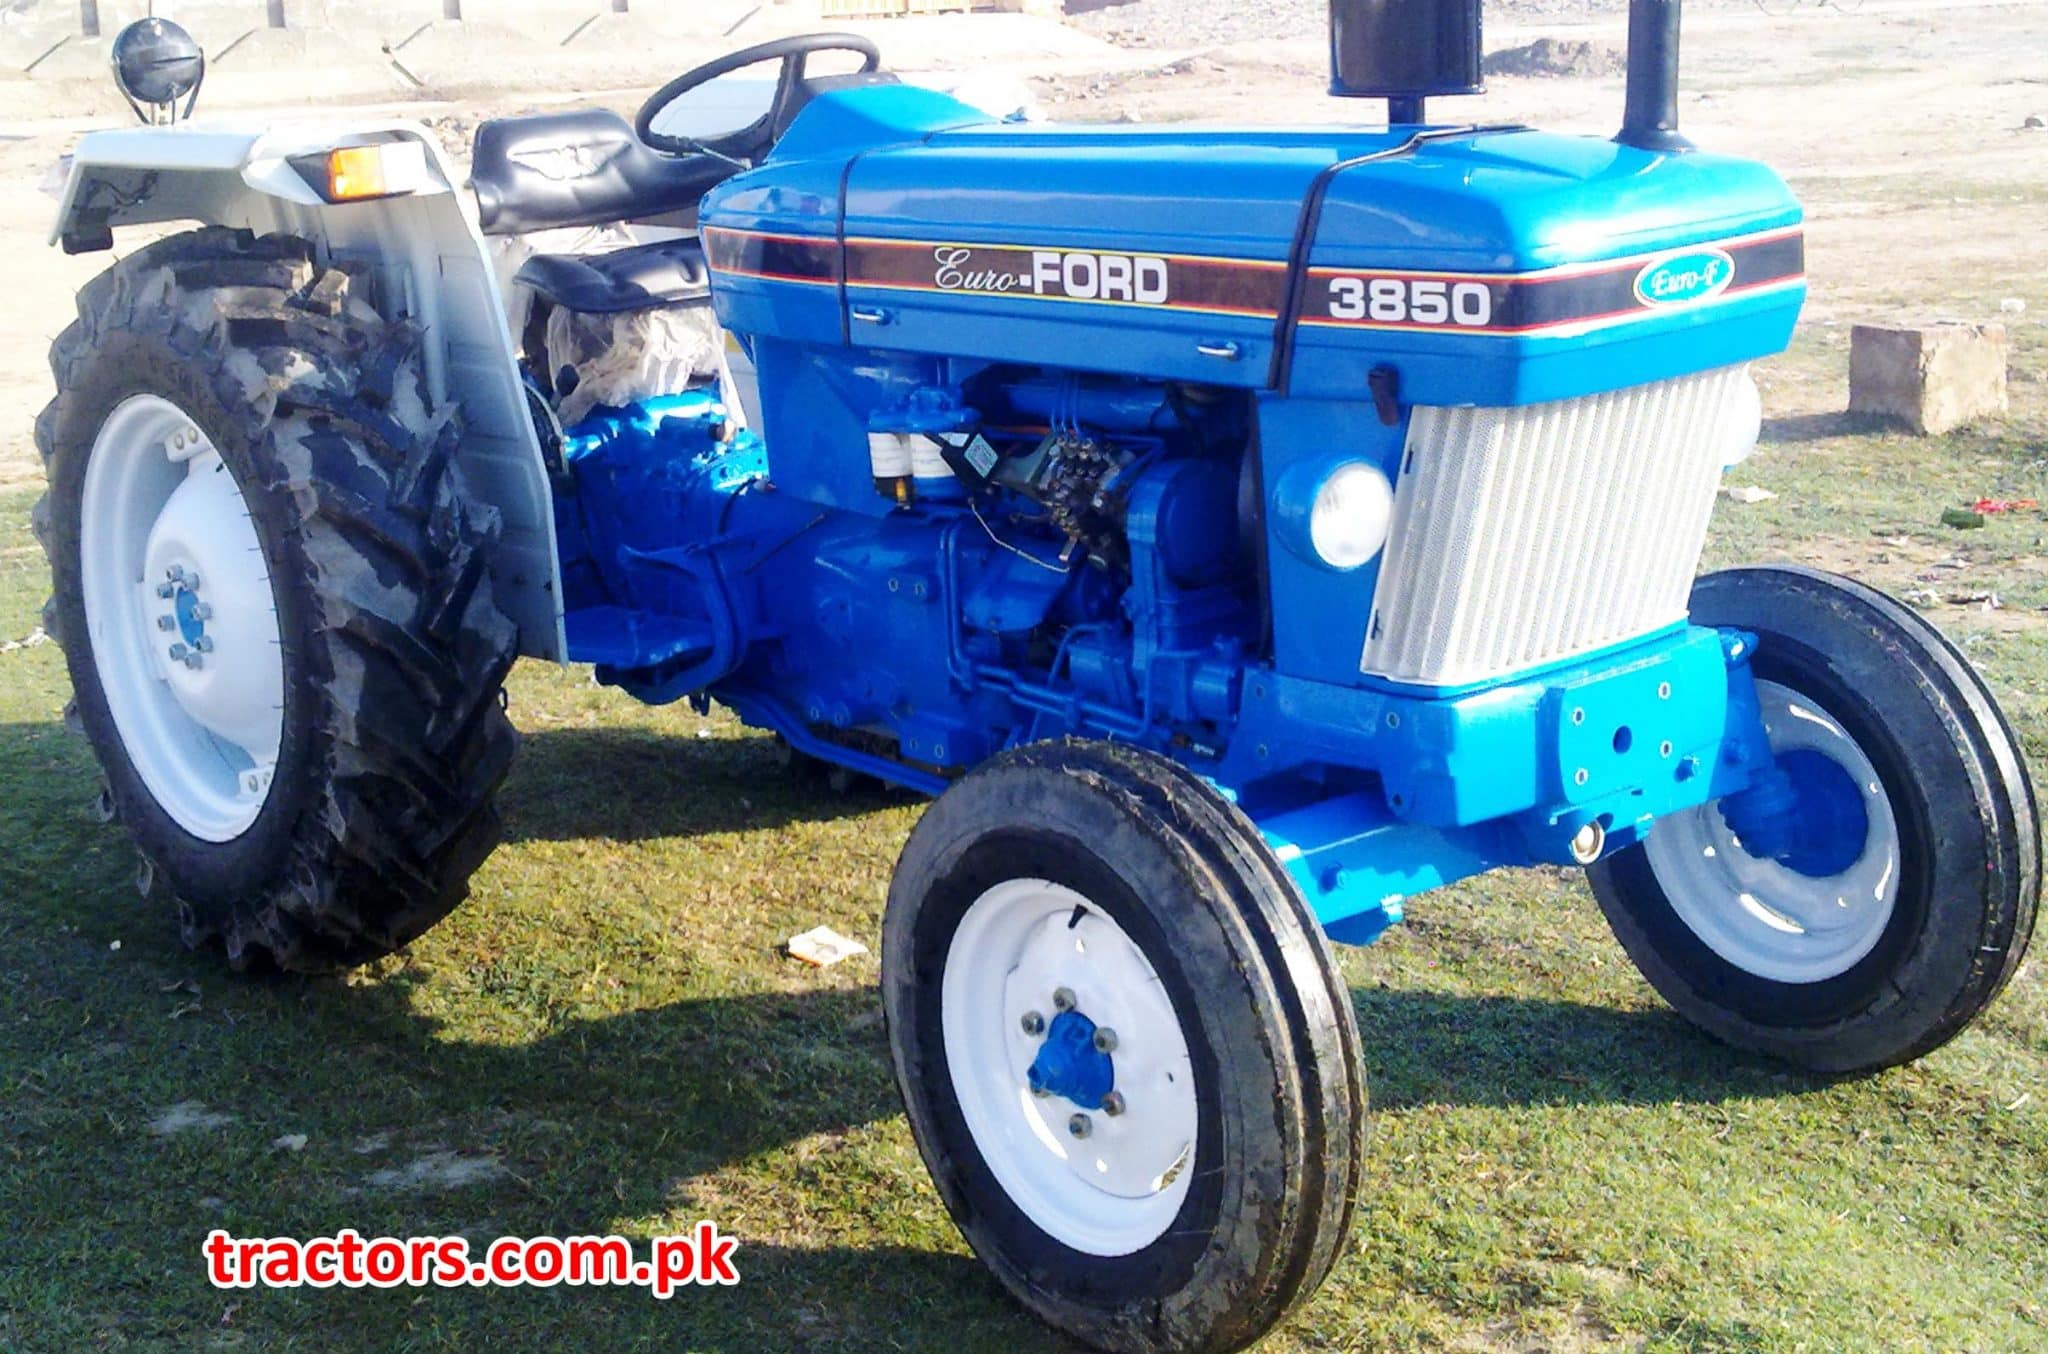 Ford Model F Tractor : Euro ford tractor prices in pakistan model